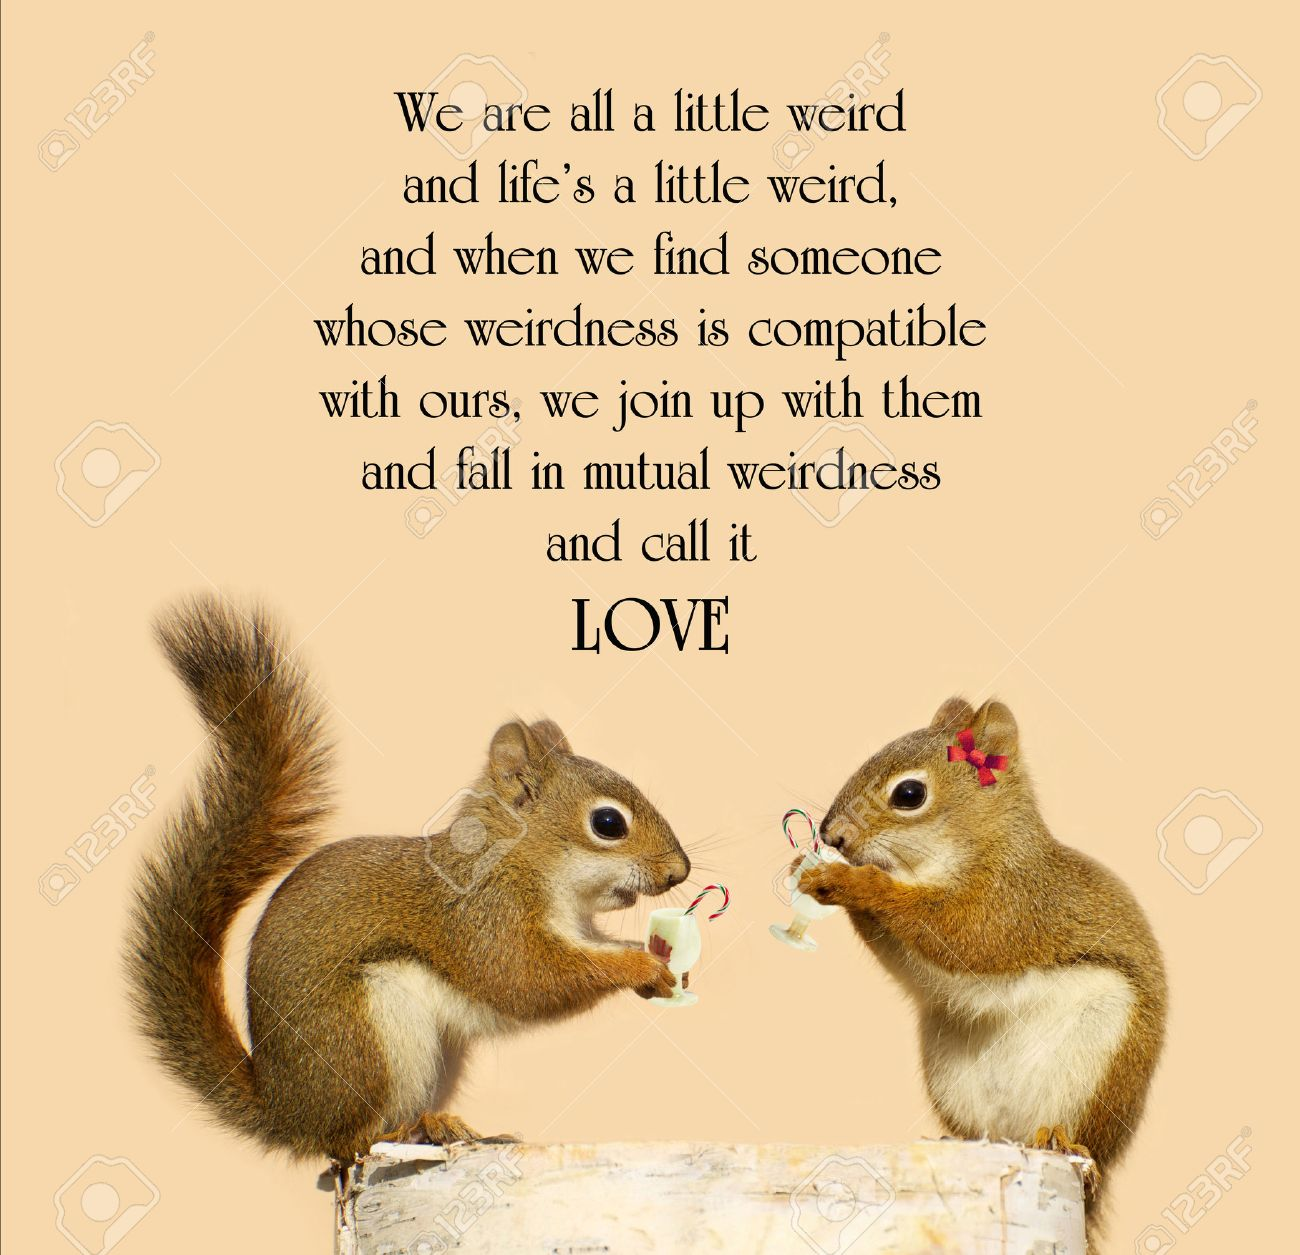 Inspirational Quote On Love With A Cute Pair Of Squirrels In Love, Enjoying  Some Eggnog